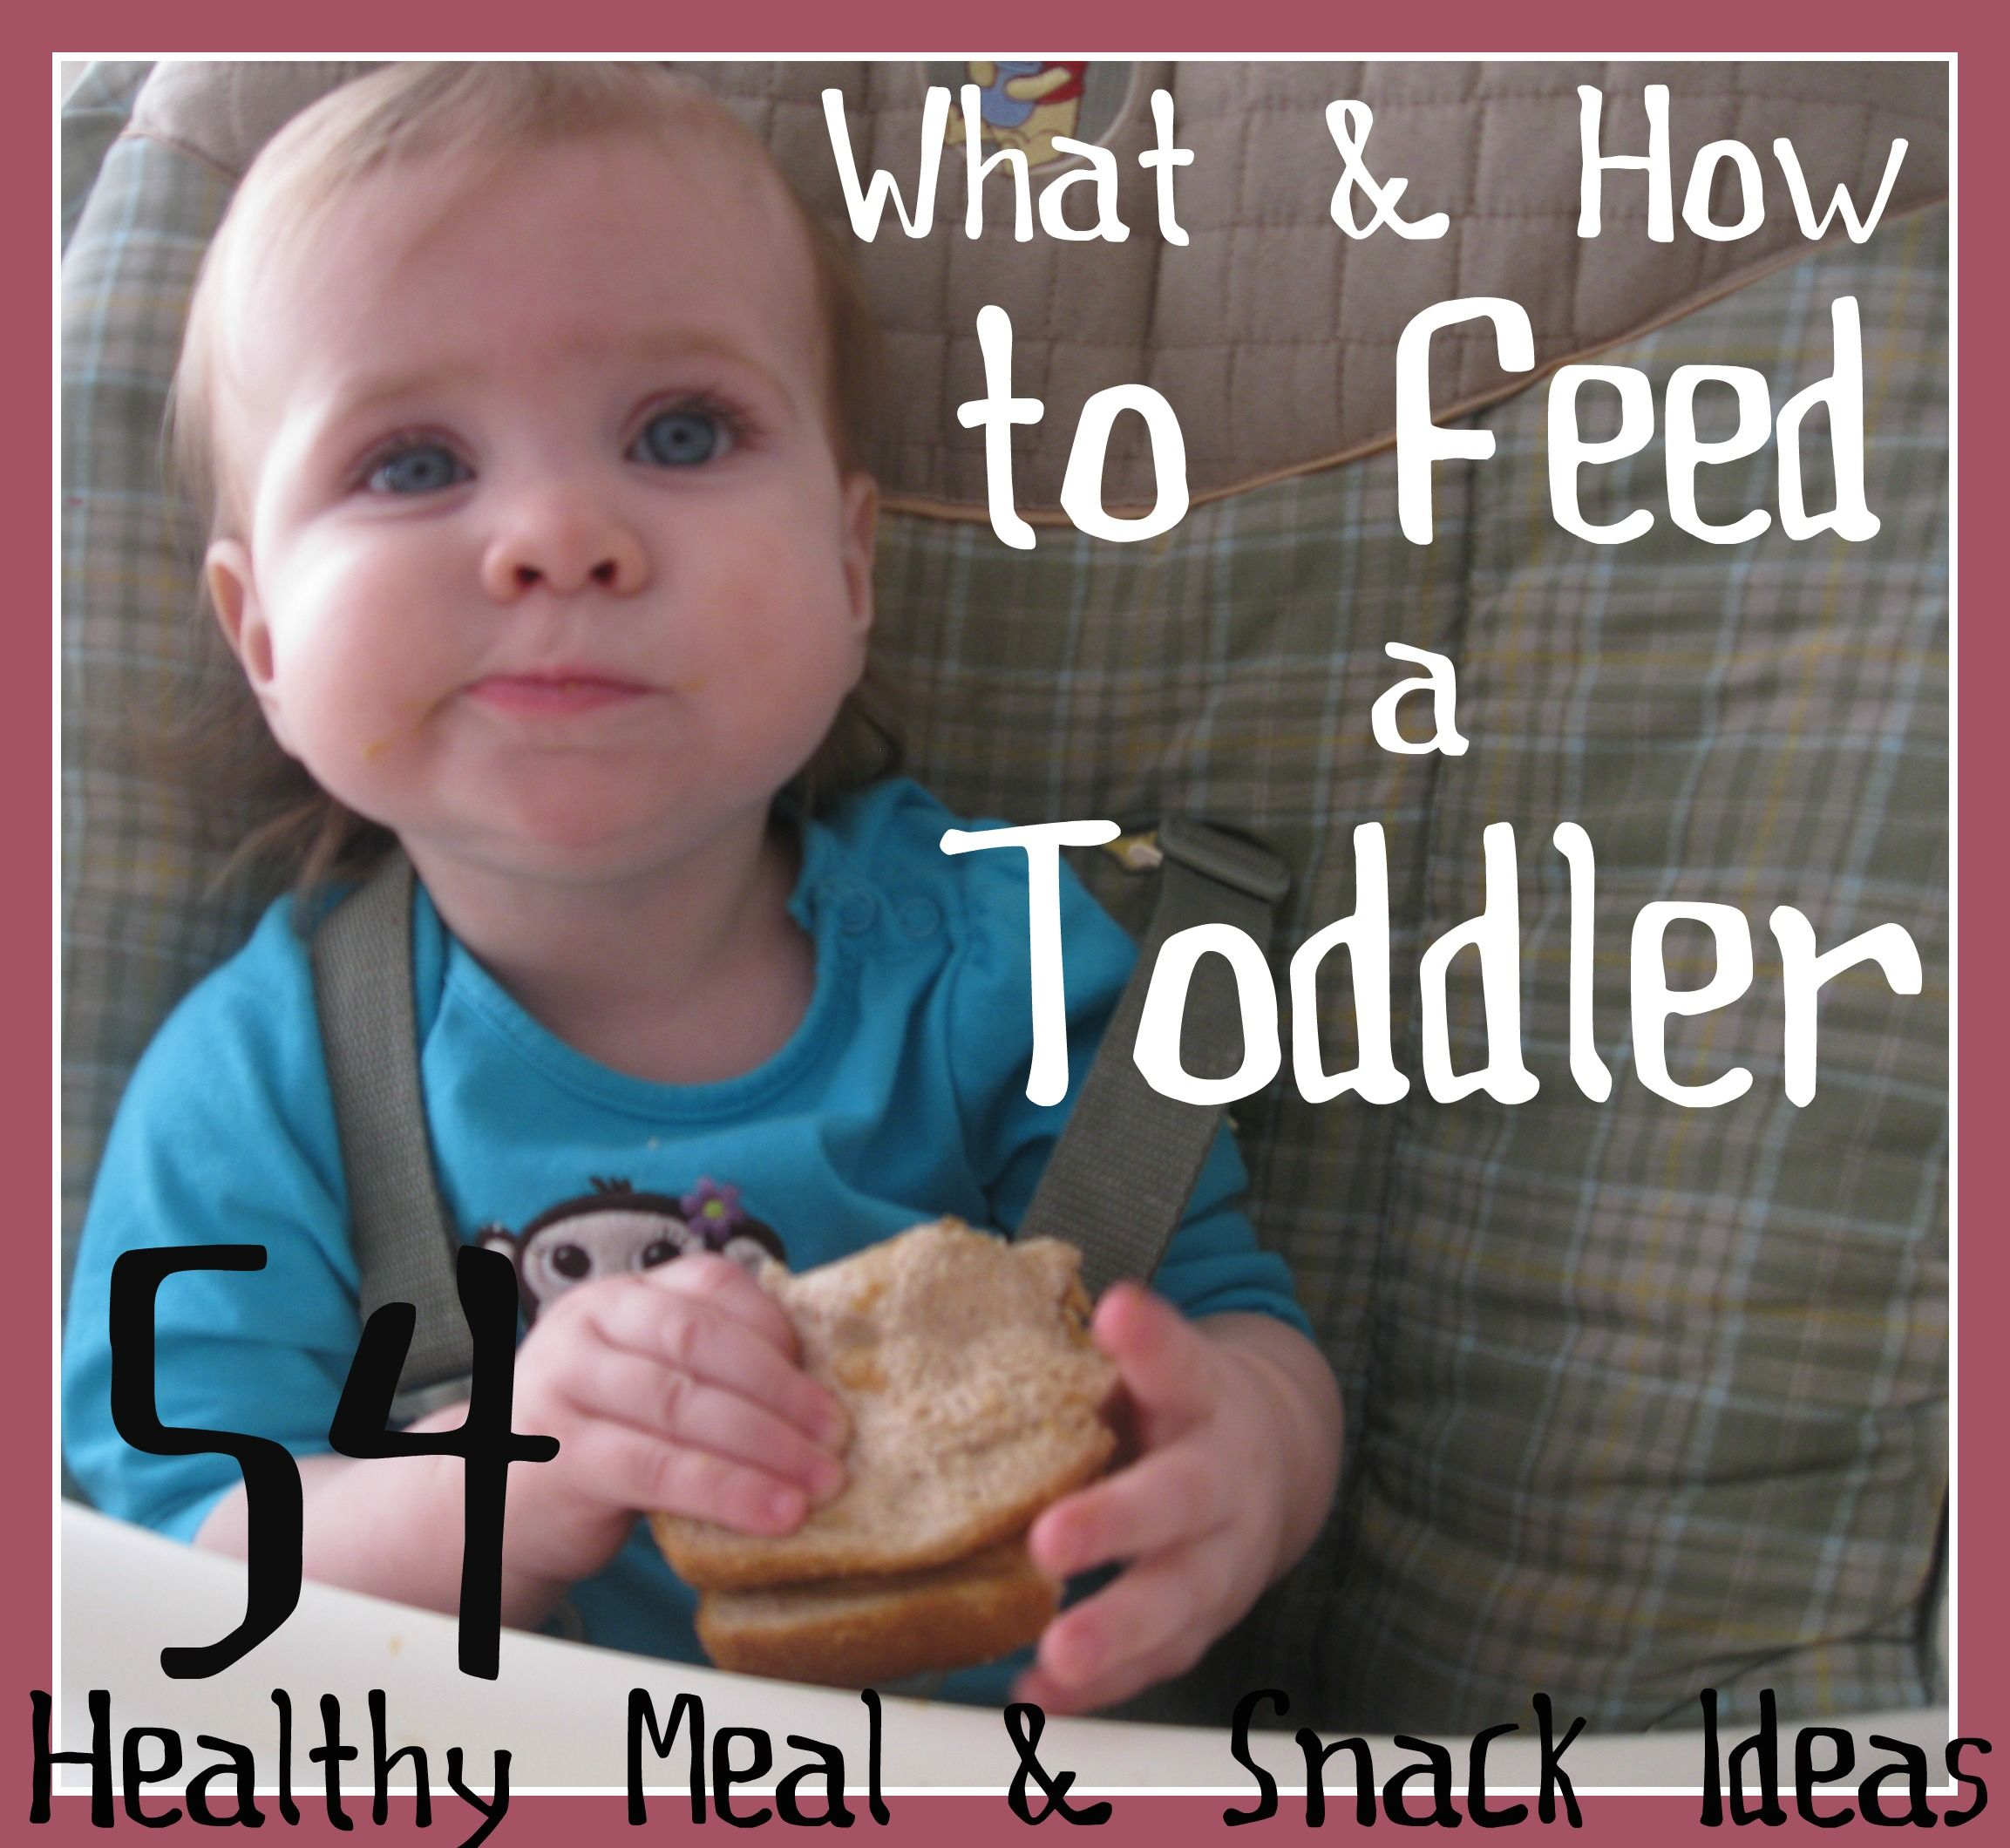 54 Healthy Meal and Snack Ideas that your Toddler will Love!